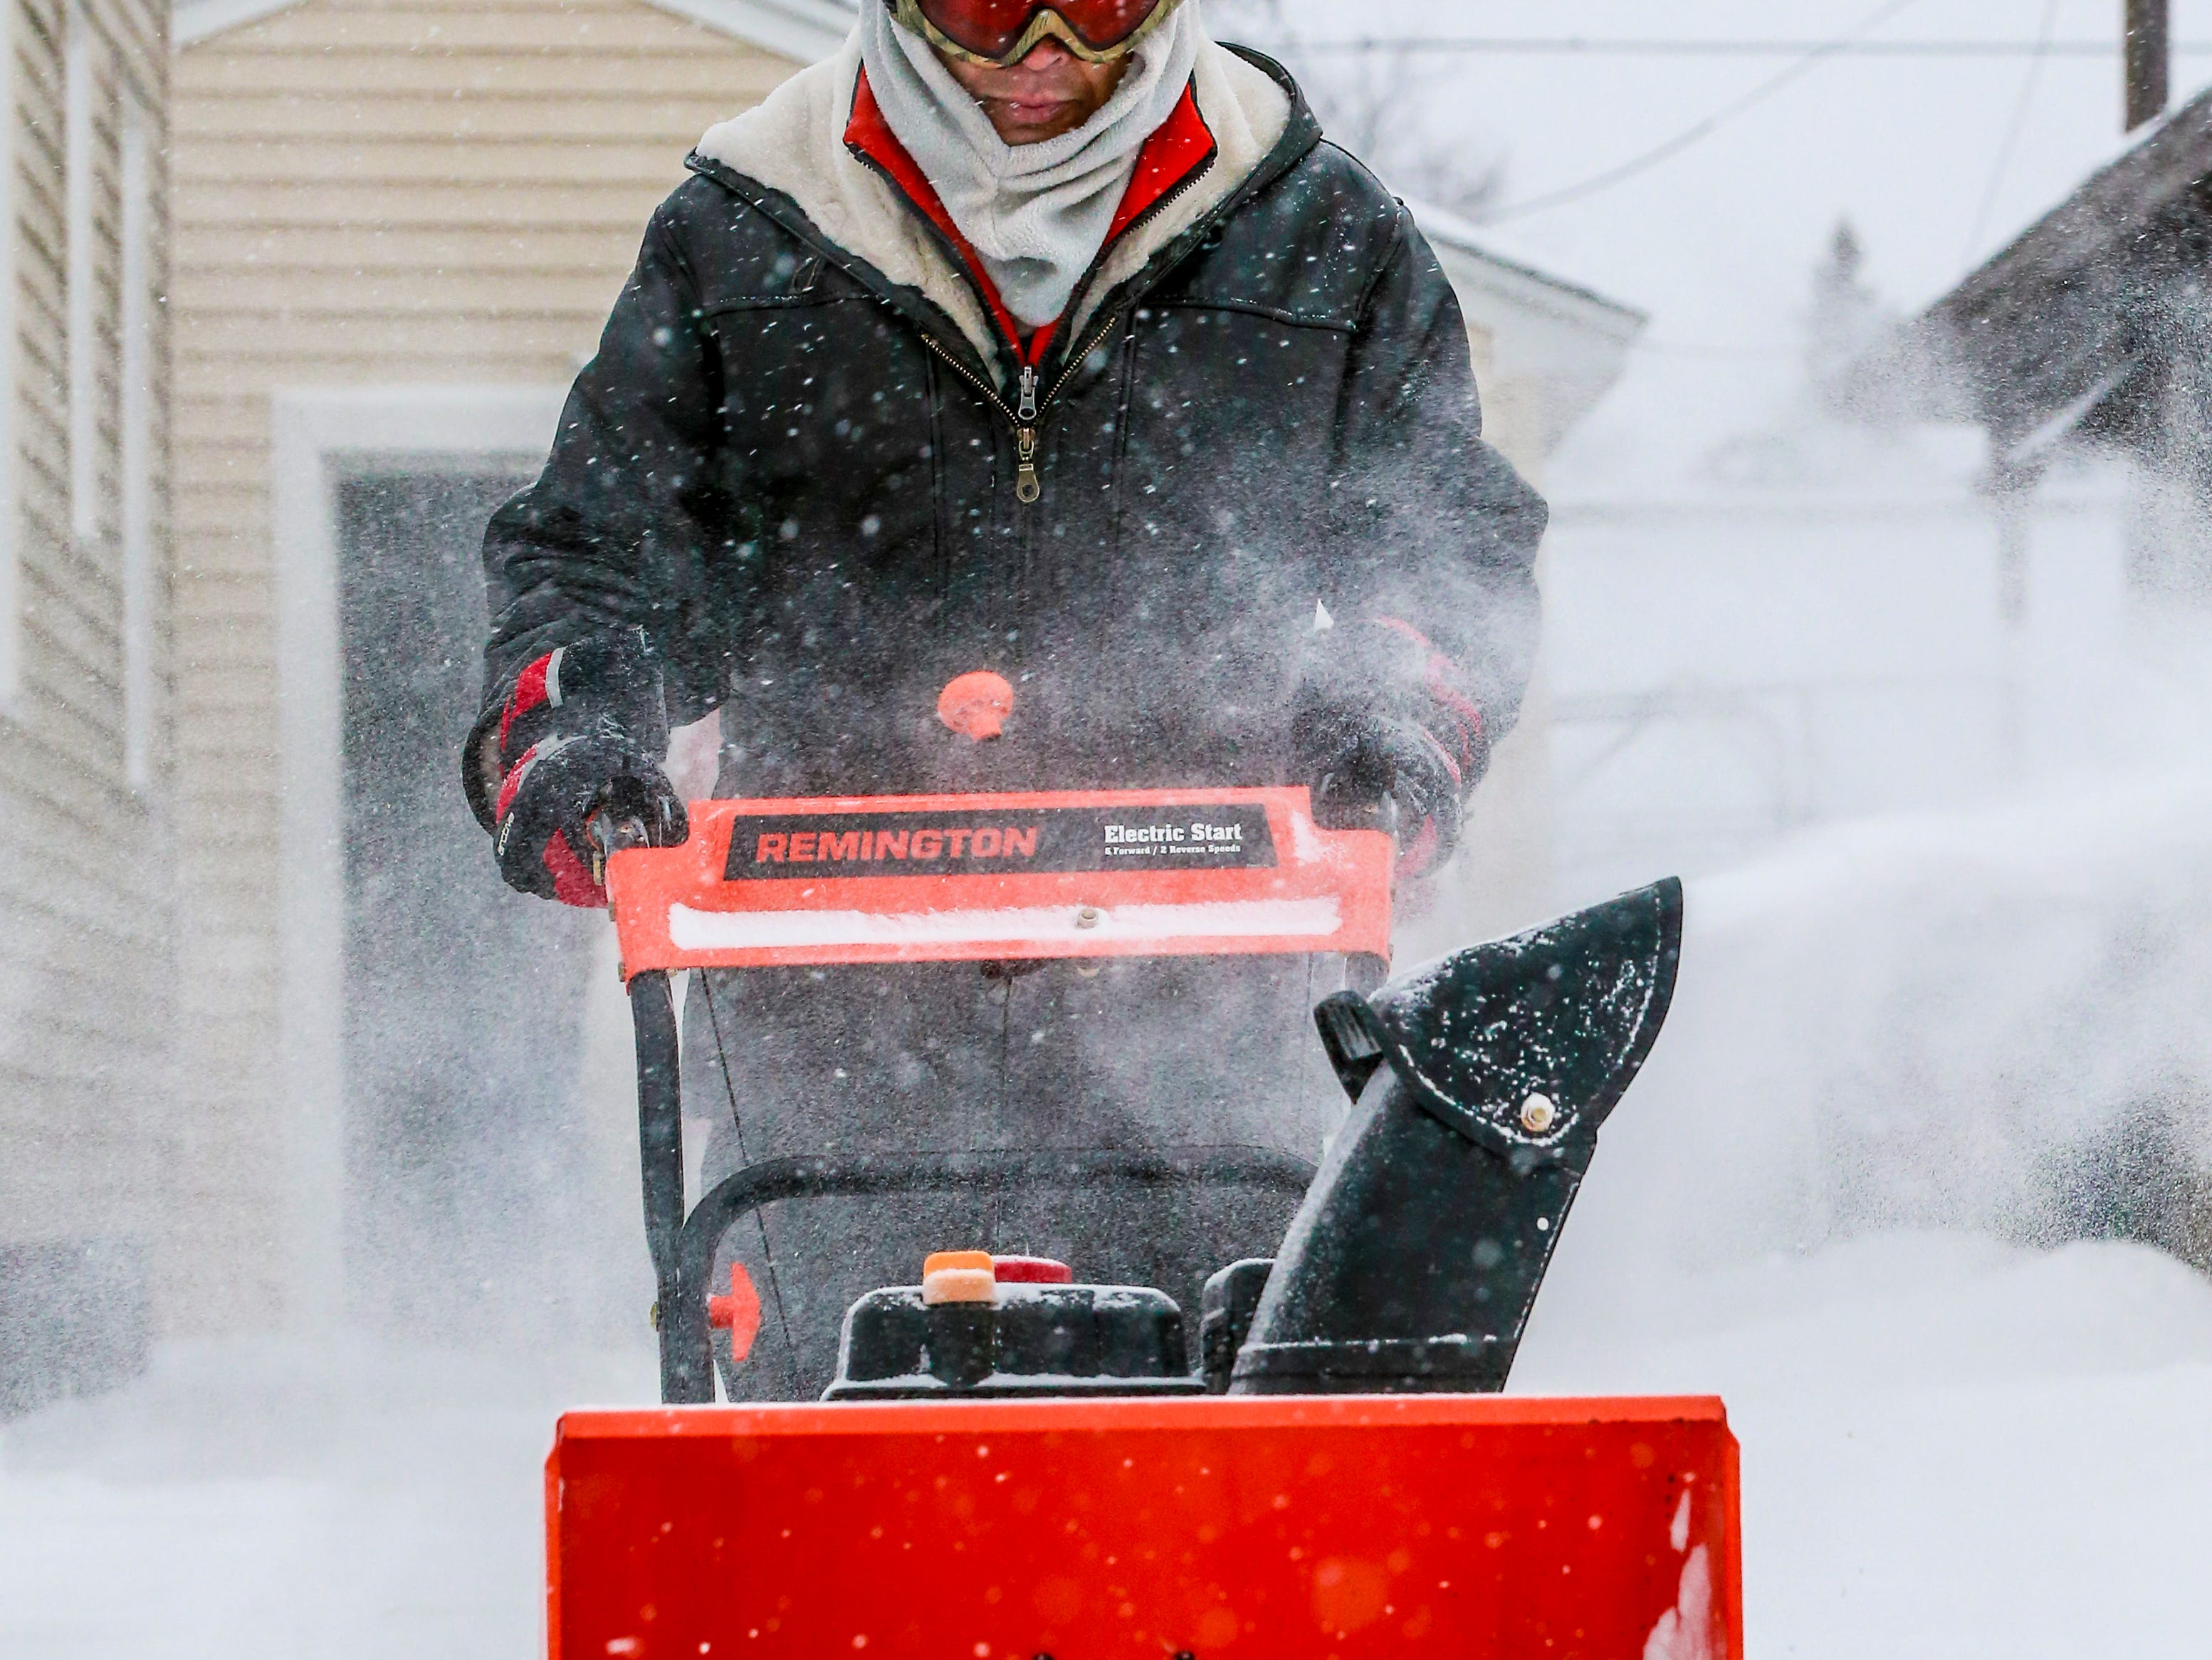 Vichai Gillette blows snow off from his driveway after a snowstorm Monday, Jan. 28, 2019, in Wausau, Wis.